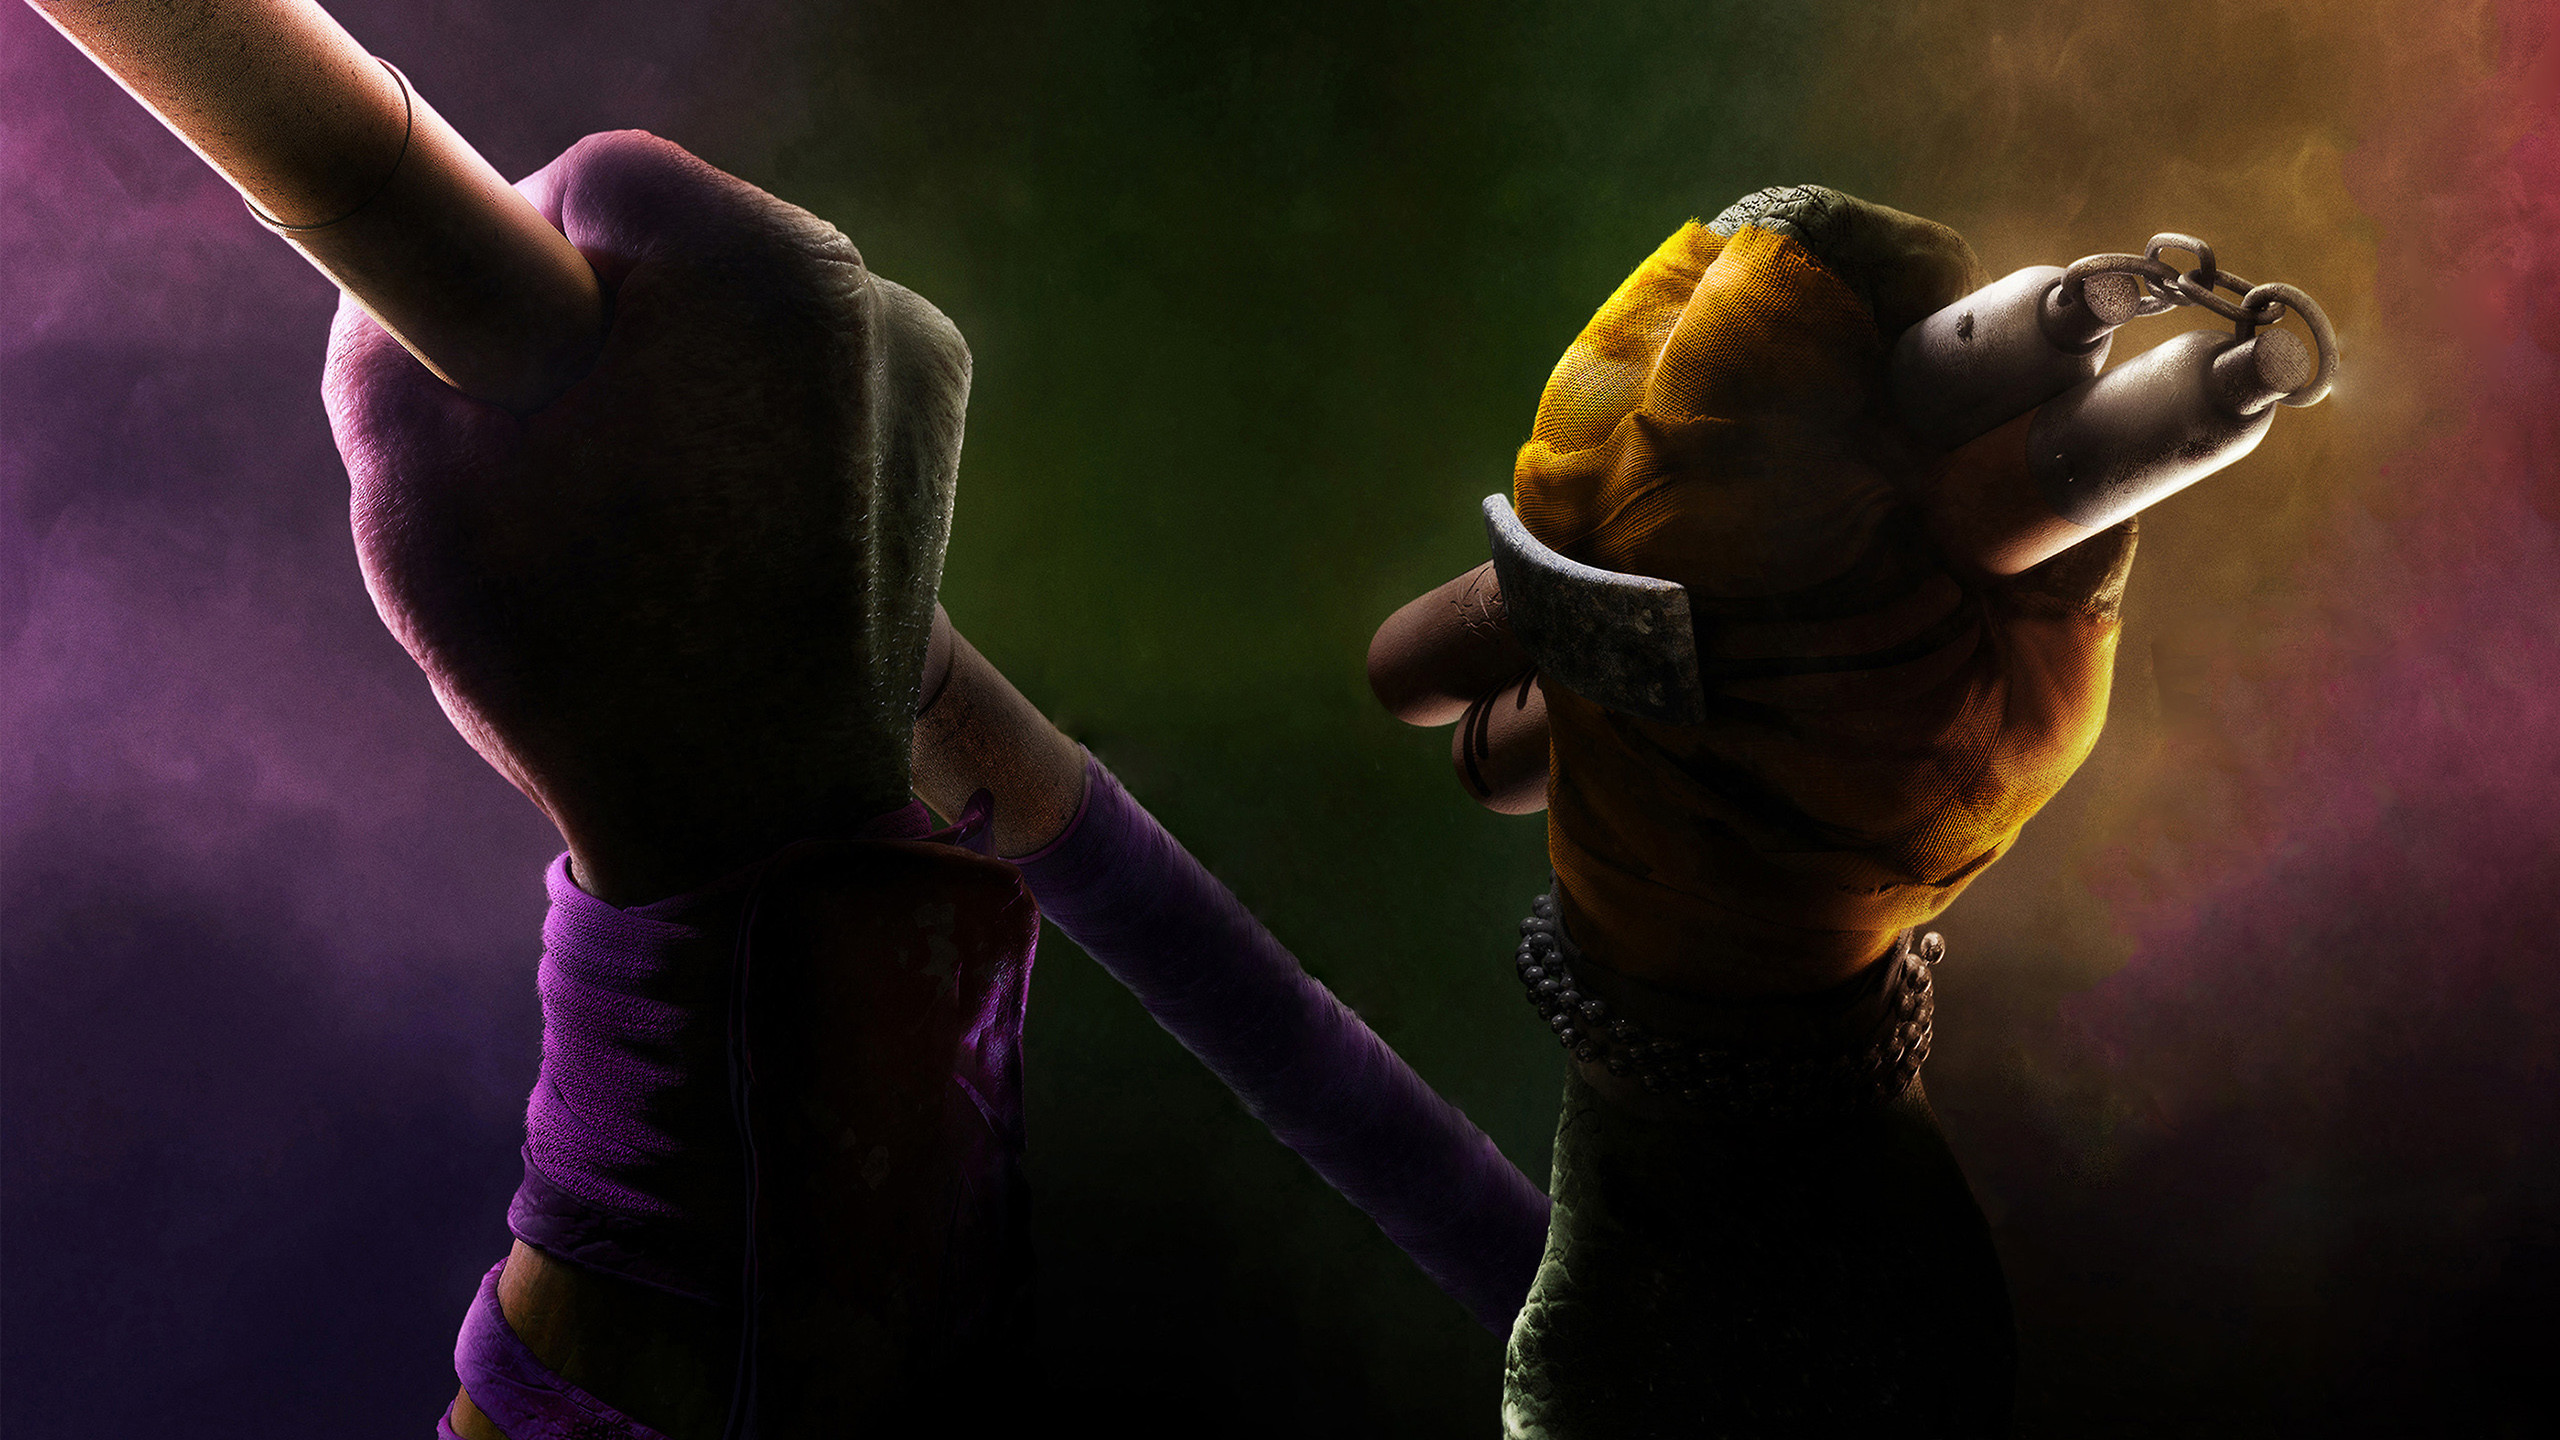 2560x1440 Donatello Michelangelo TMNT 2014